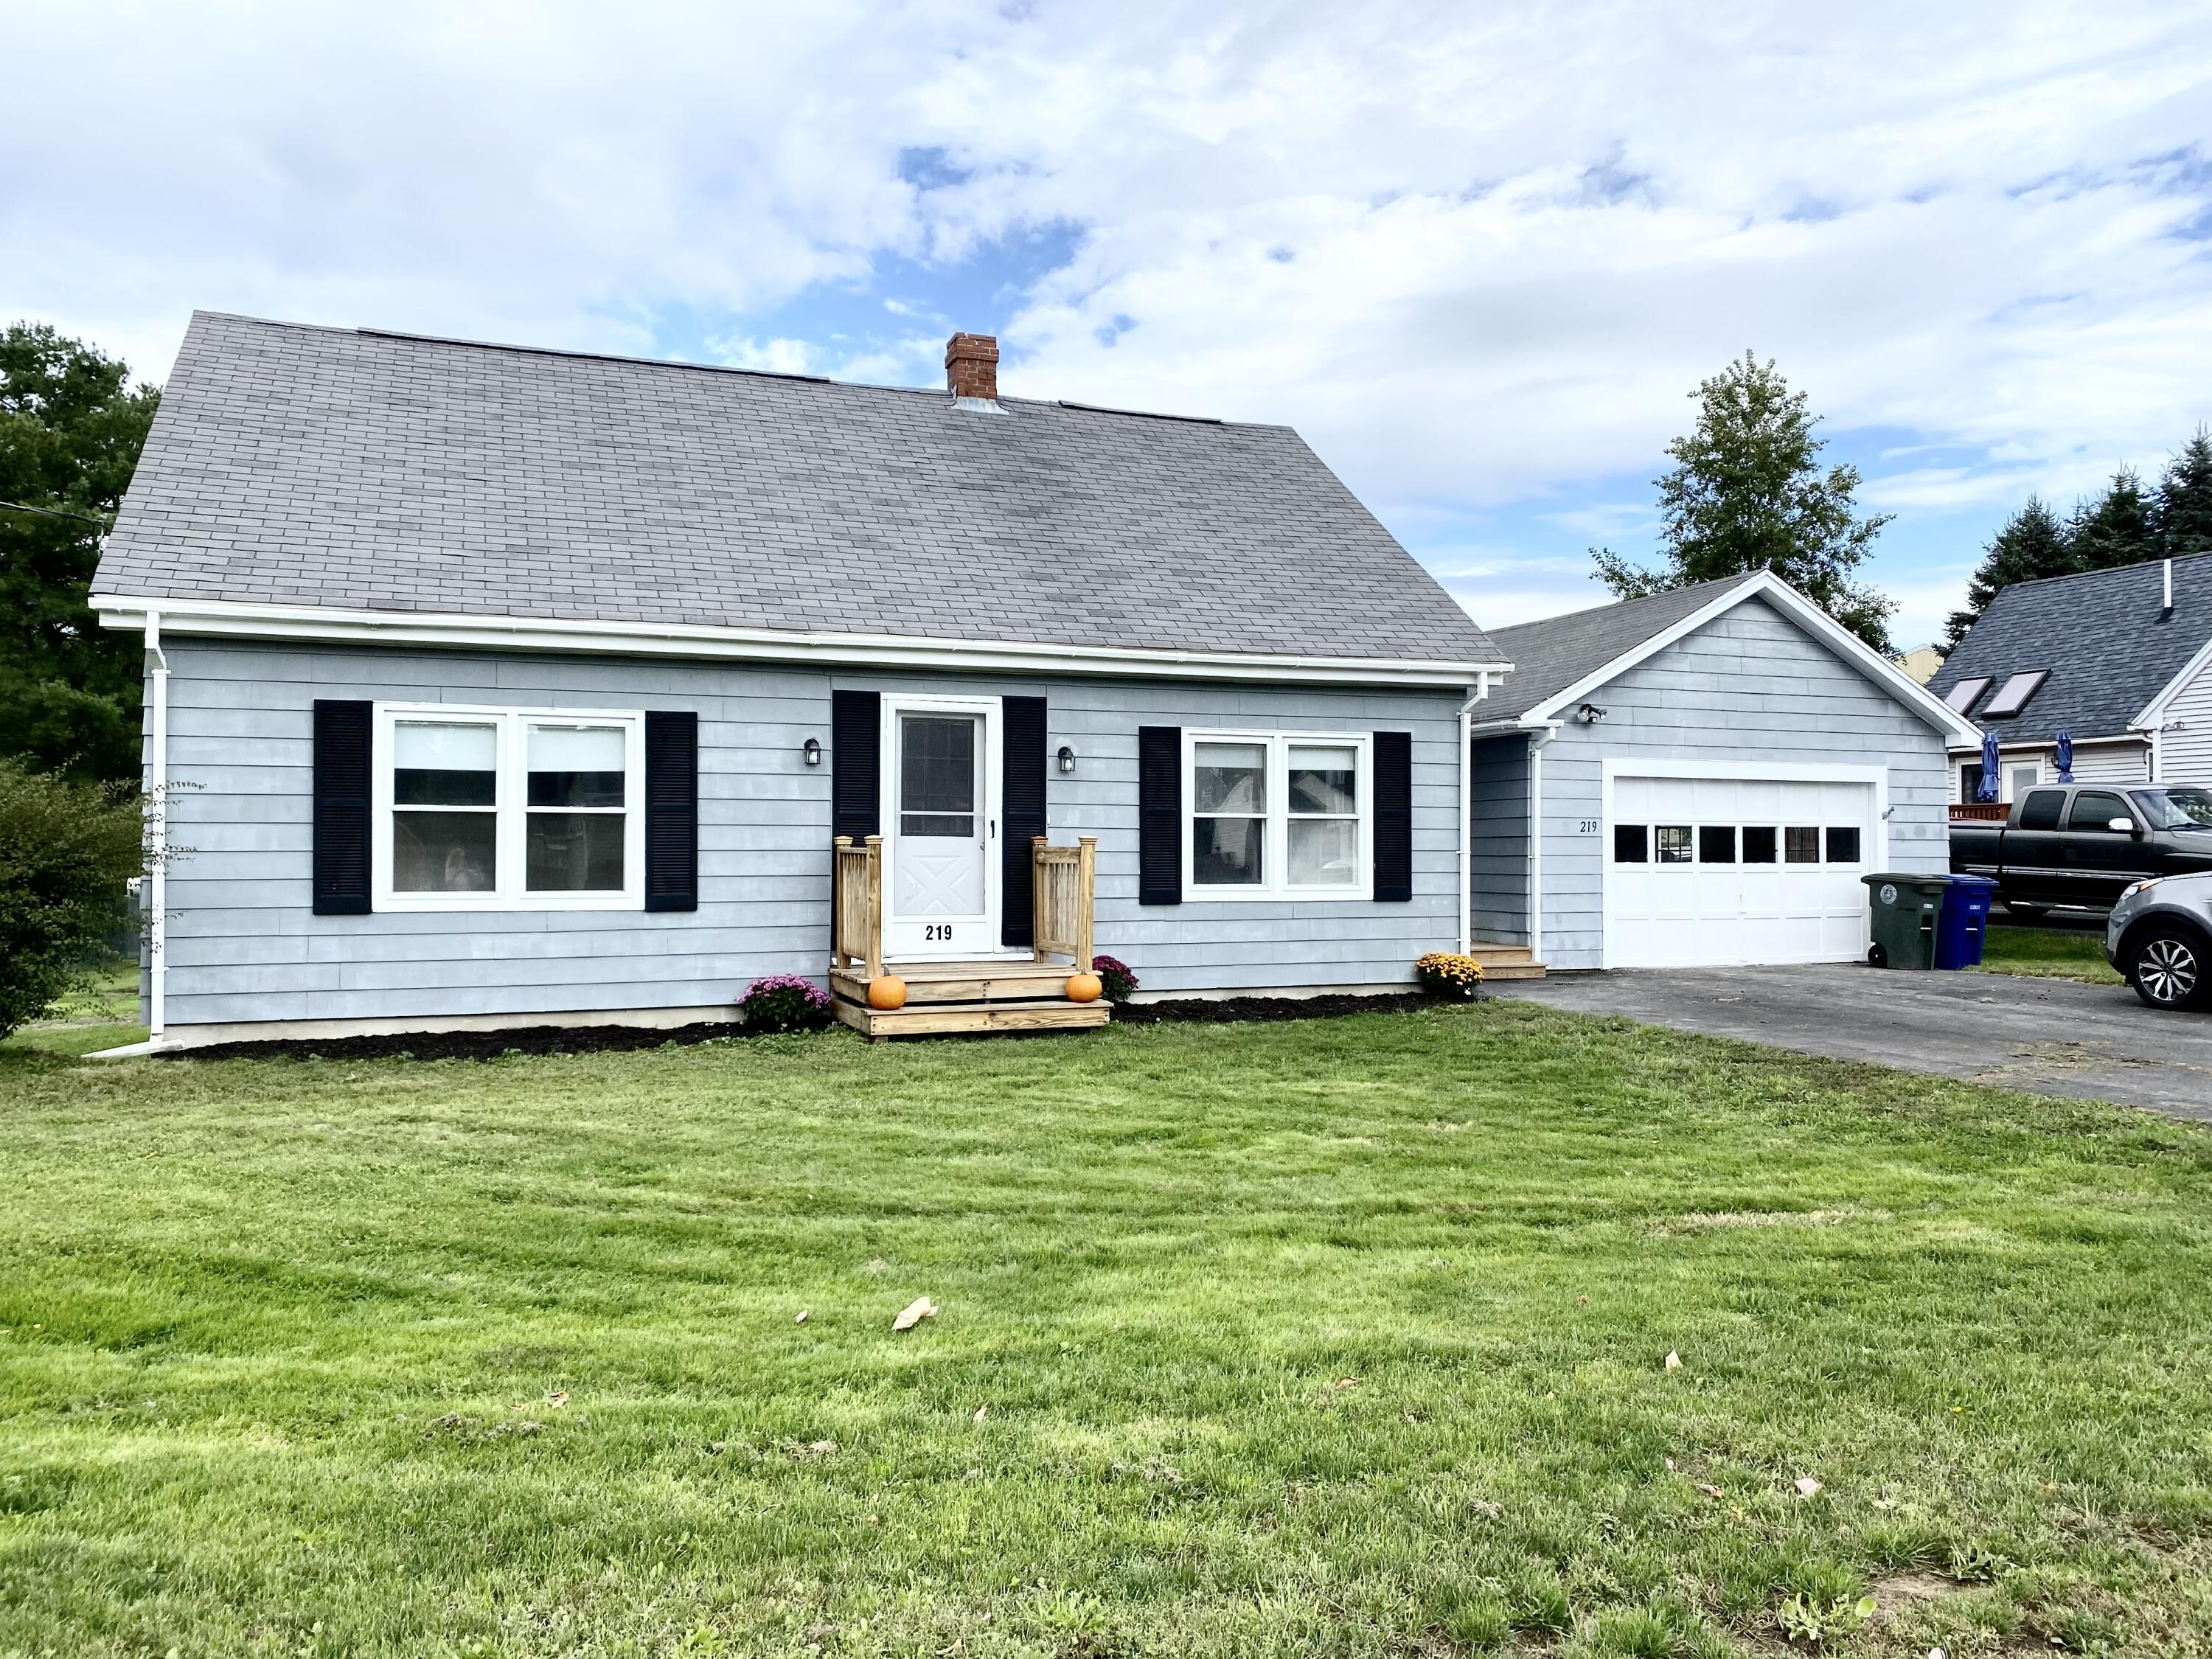 Main image for MLS listing 1510311